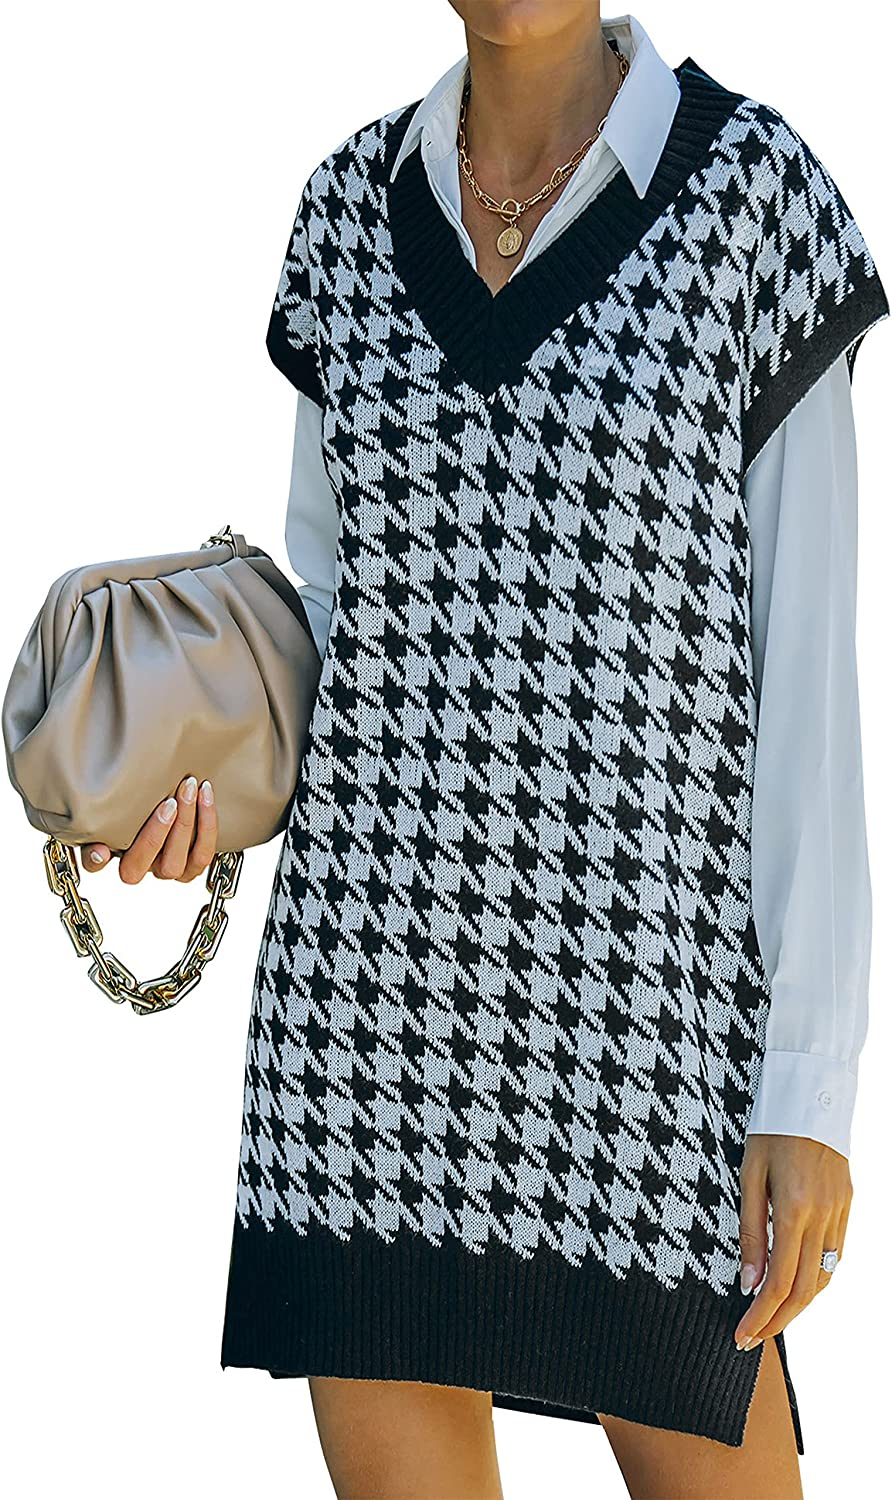 Ailoqing Women's Sweater Vest V Neck Sleeveless Houndstooth Long Knitwear Tunic